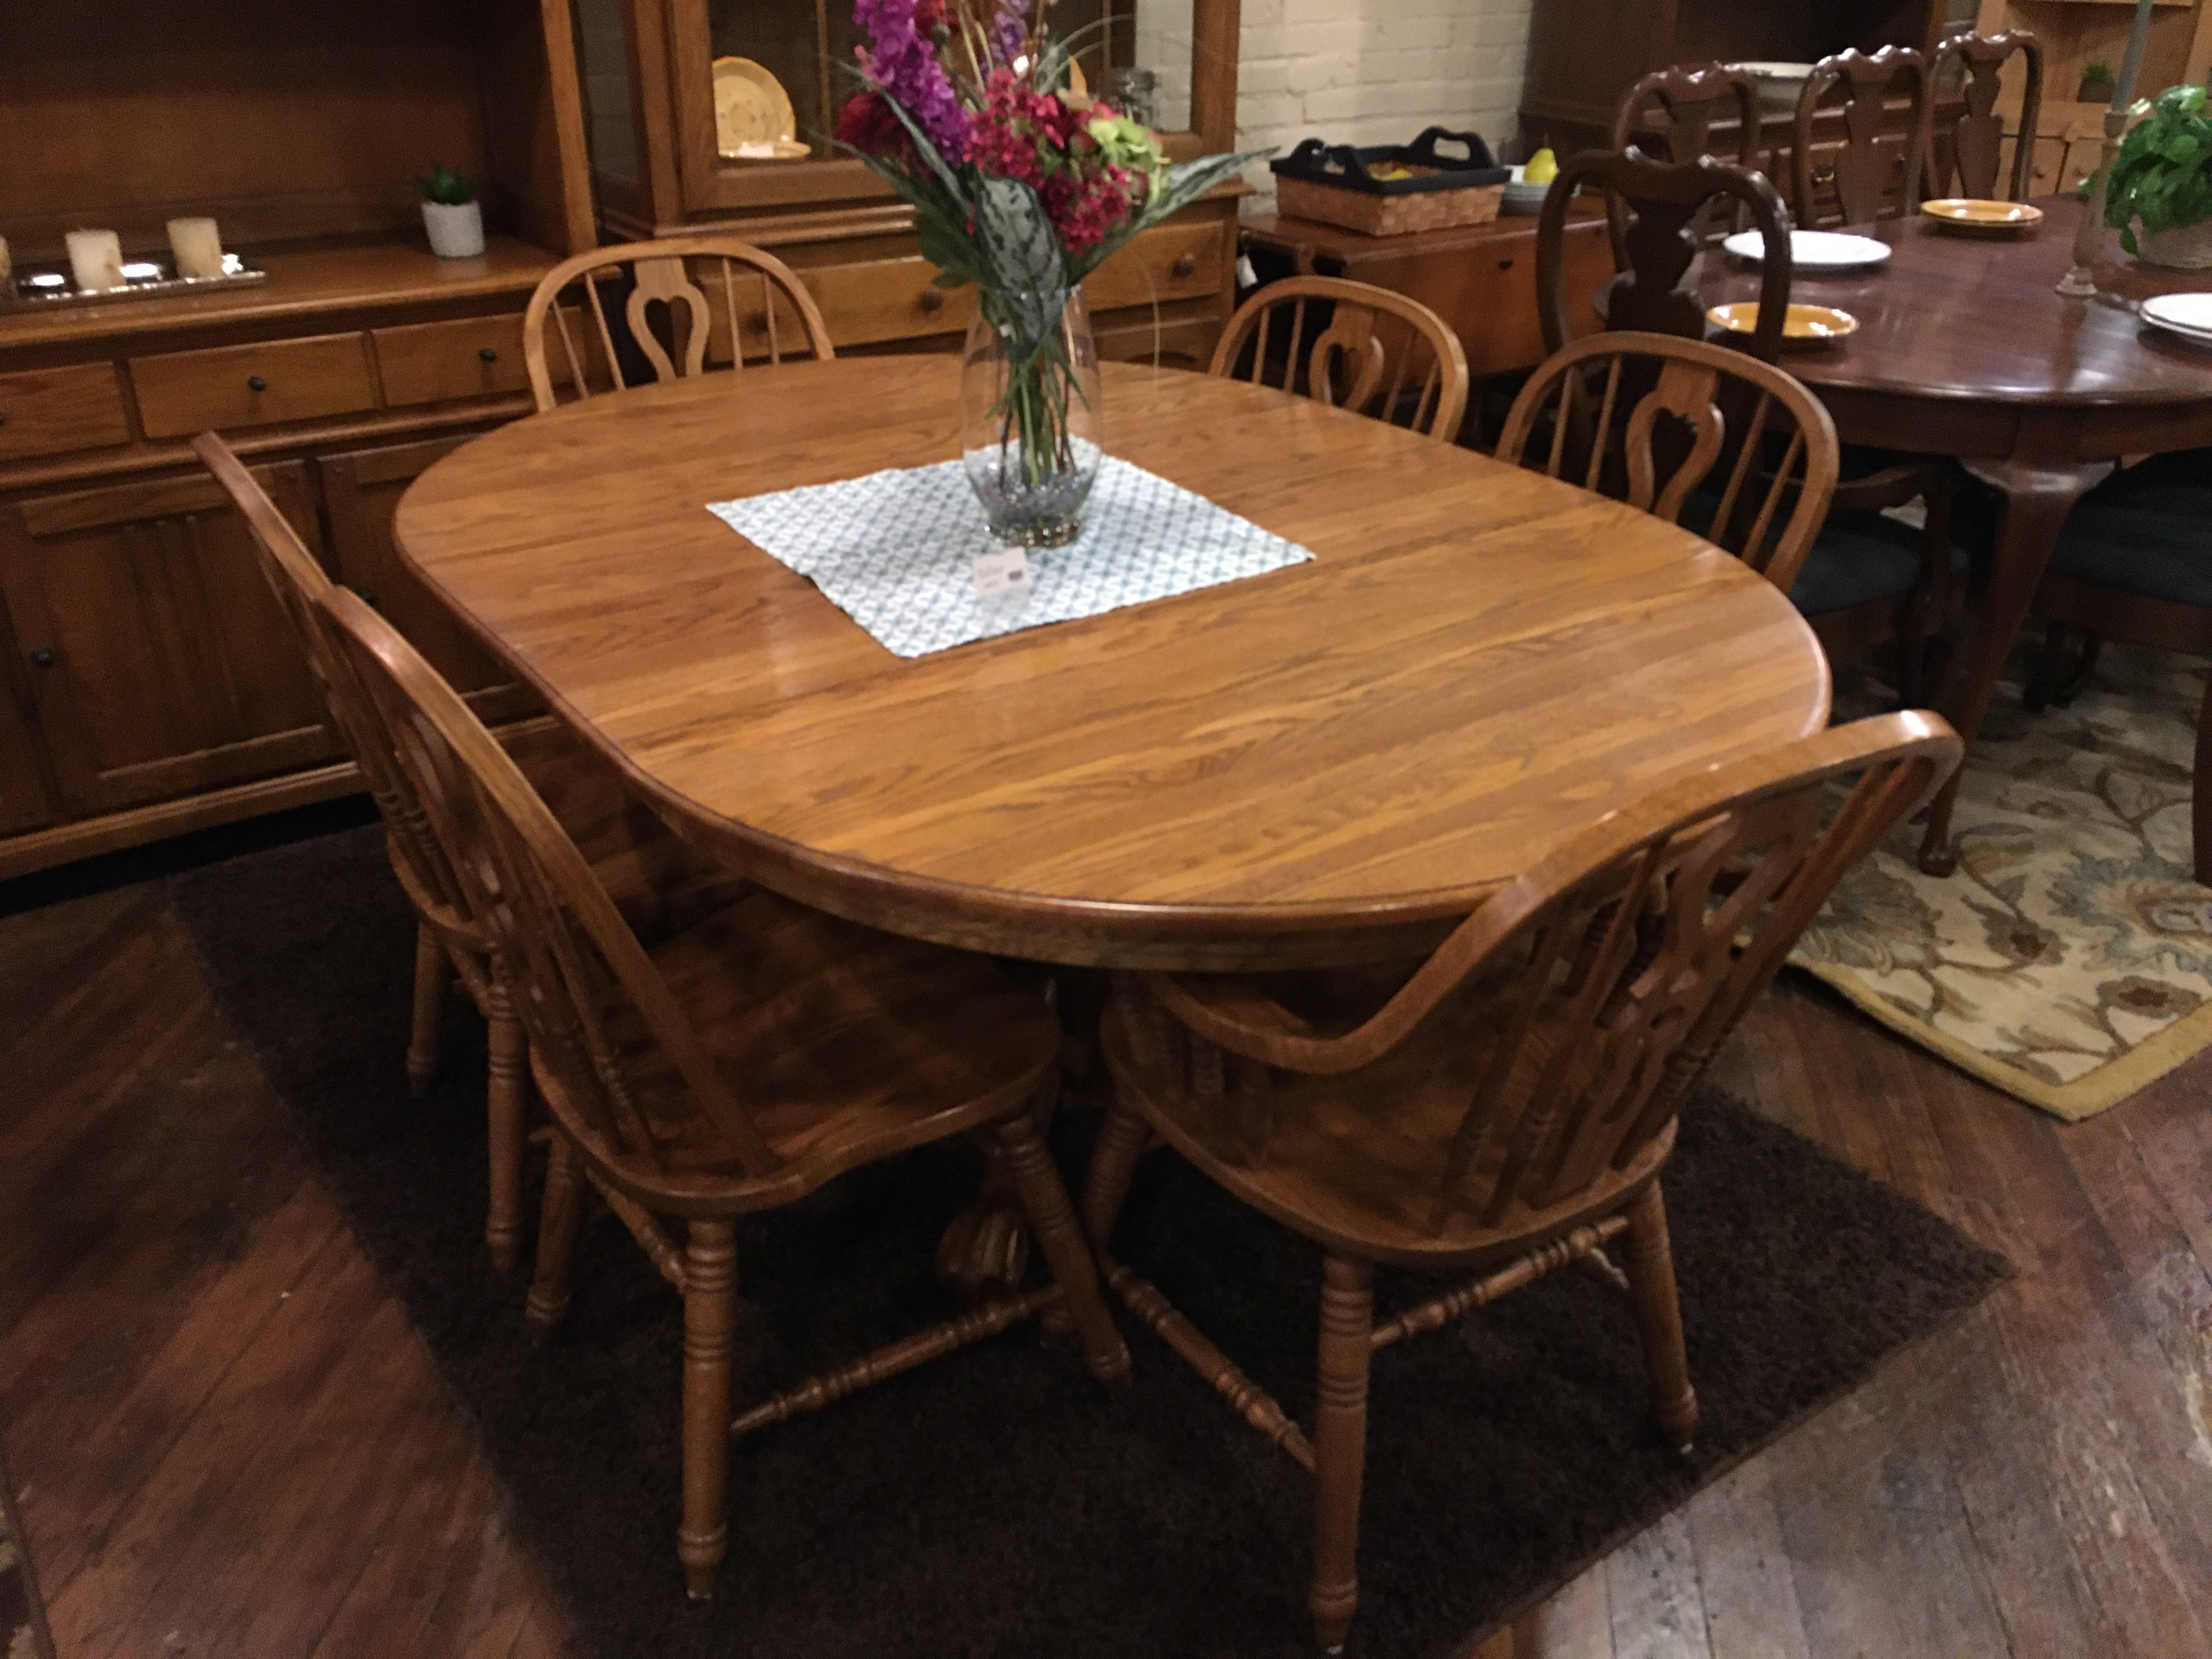 ROUND OAK TABLE & 6 CHAIRS